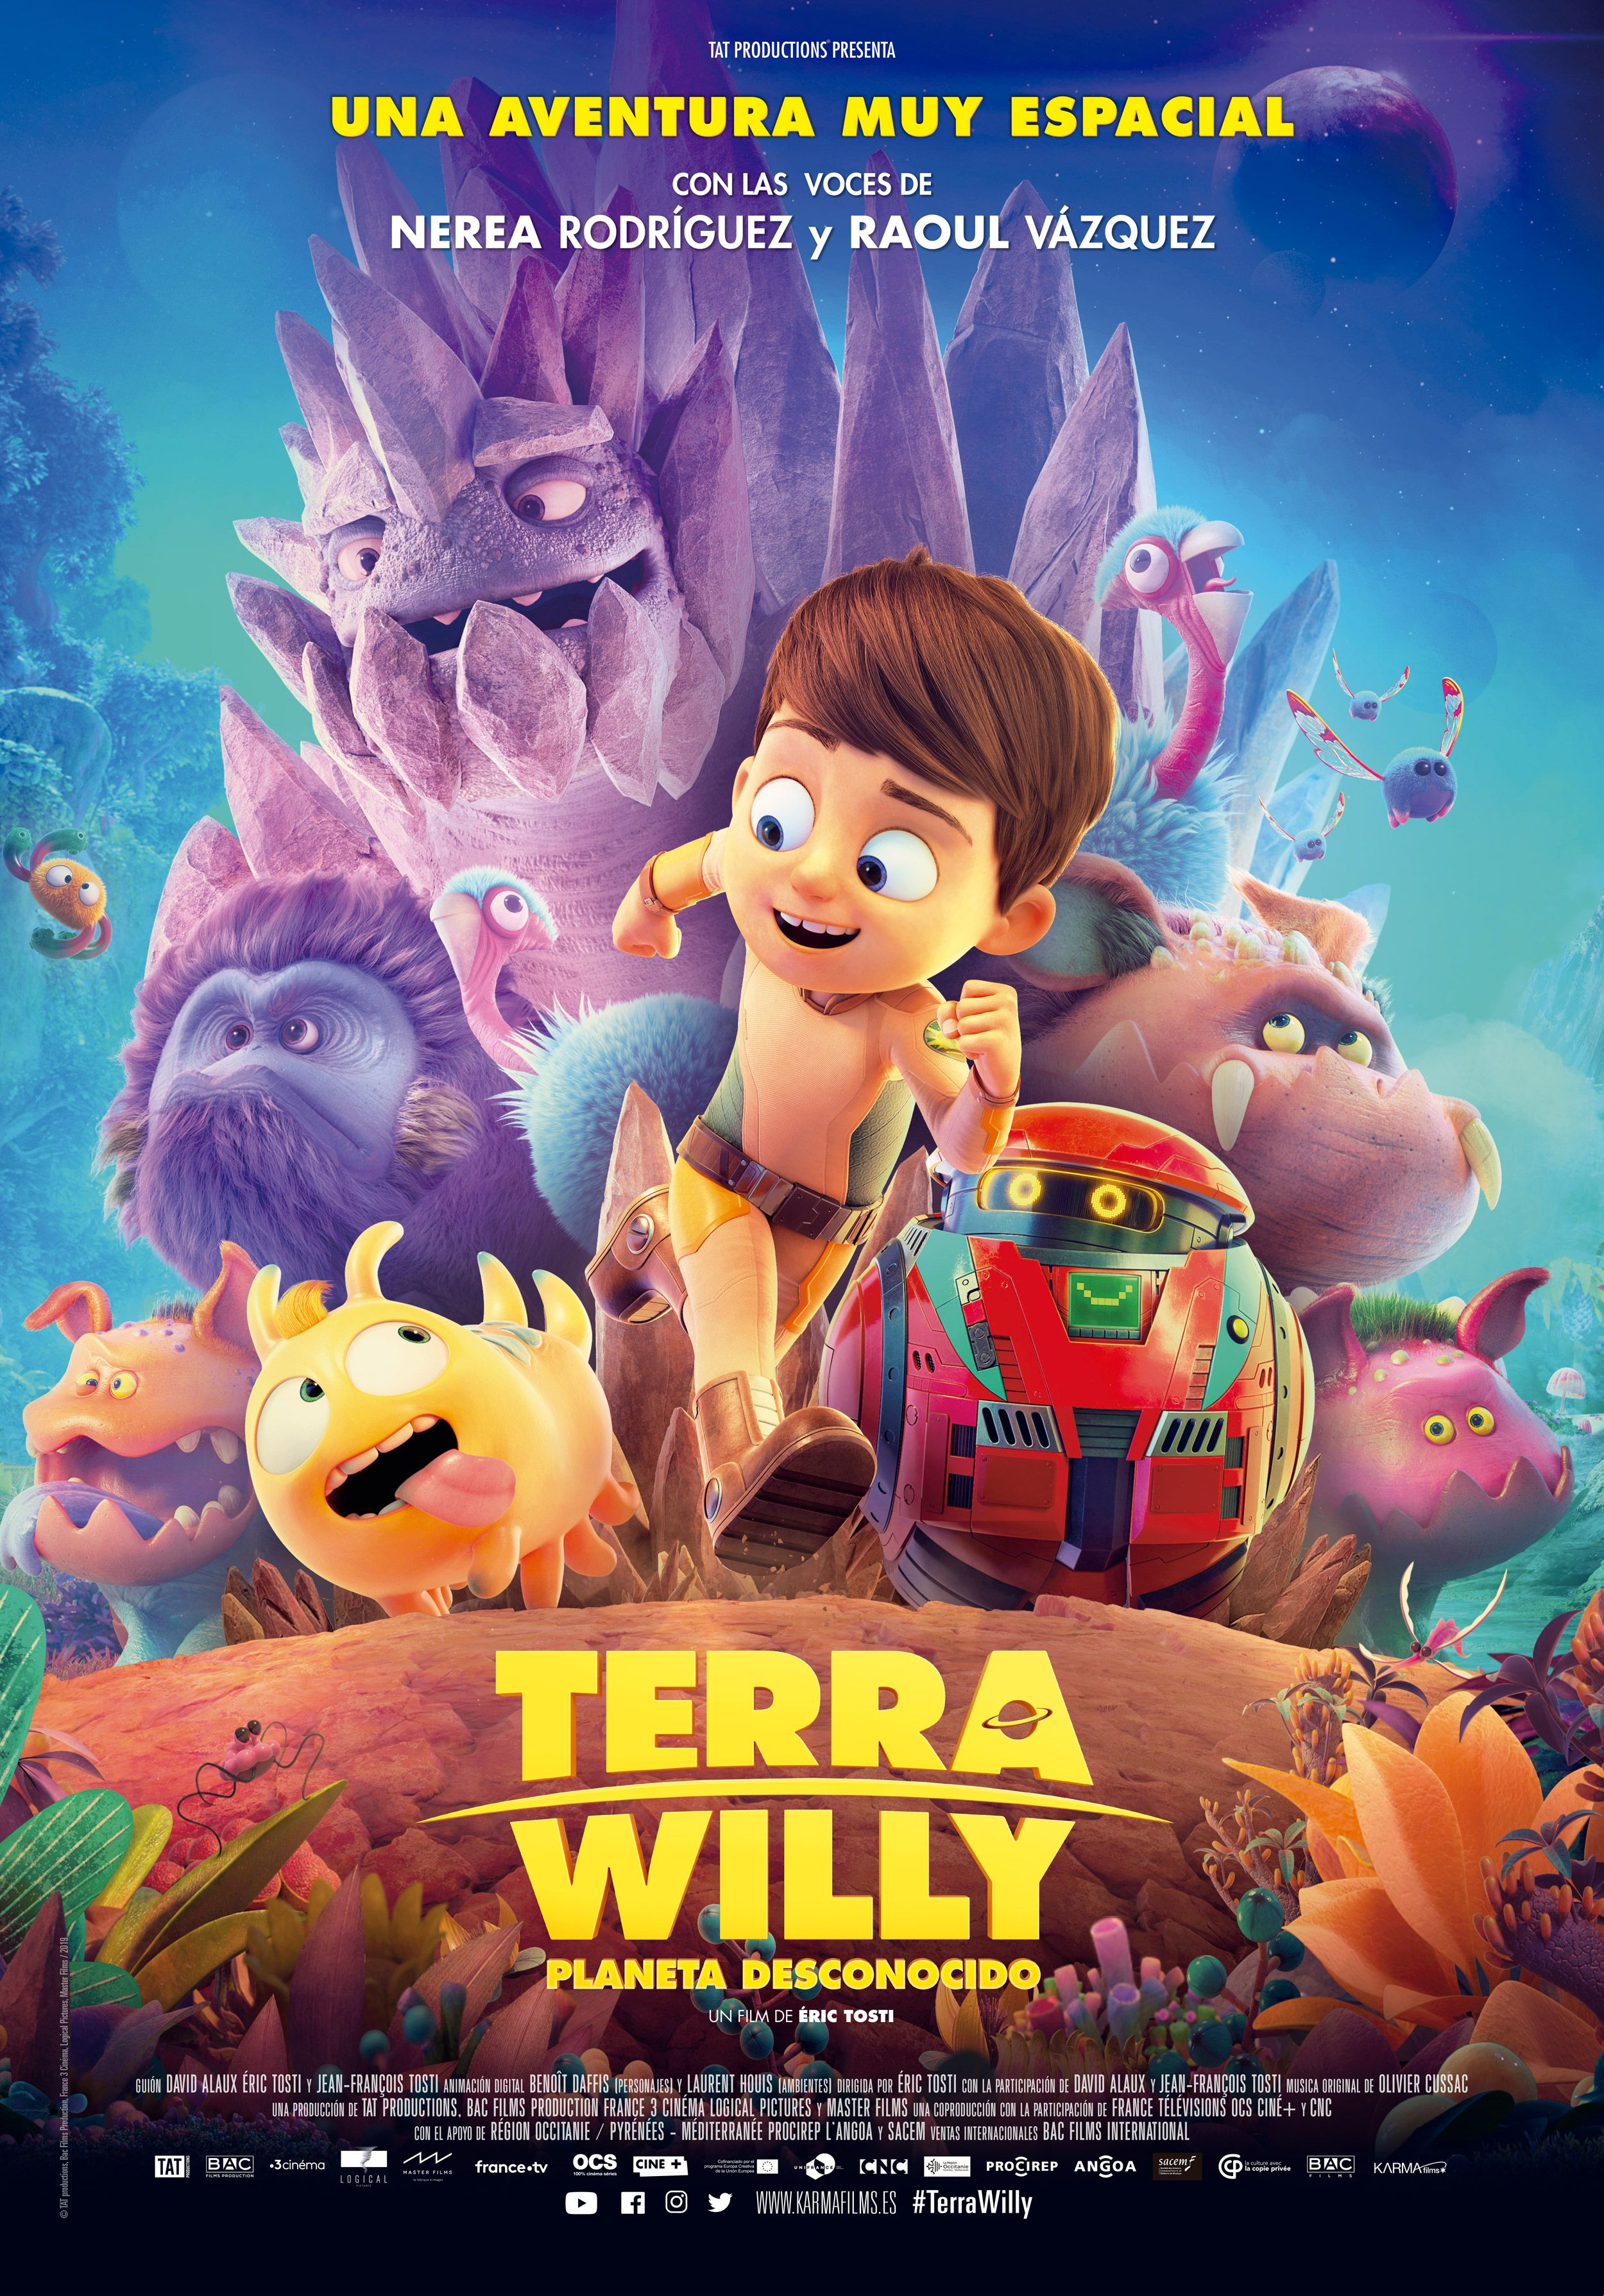 terra-willy-poster-ficha